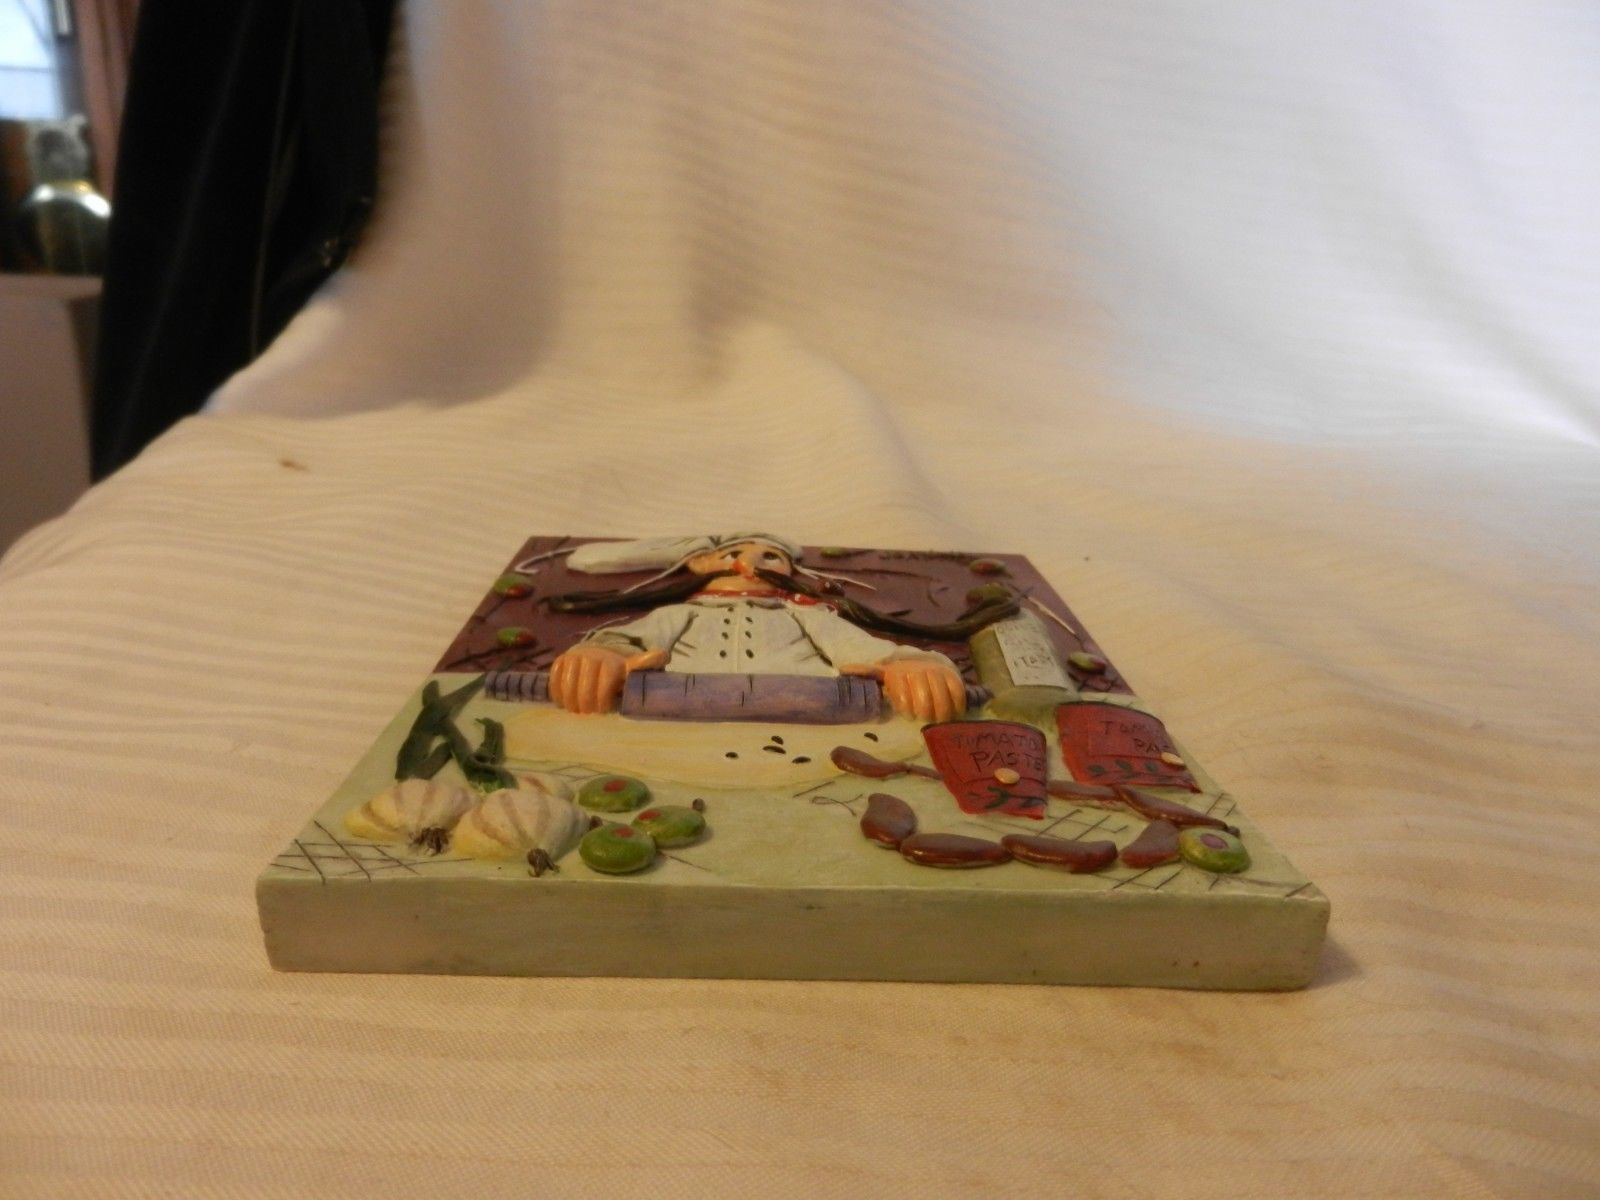 Italian Chef Rolling Dough 3-Dimensional Resin Wall Plaque by Joanna